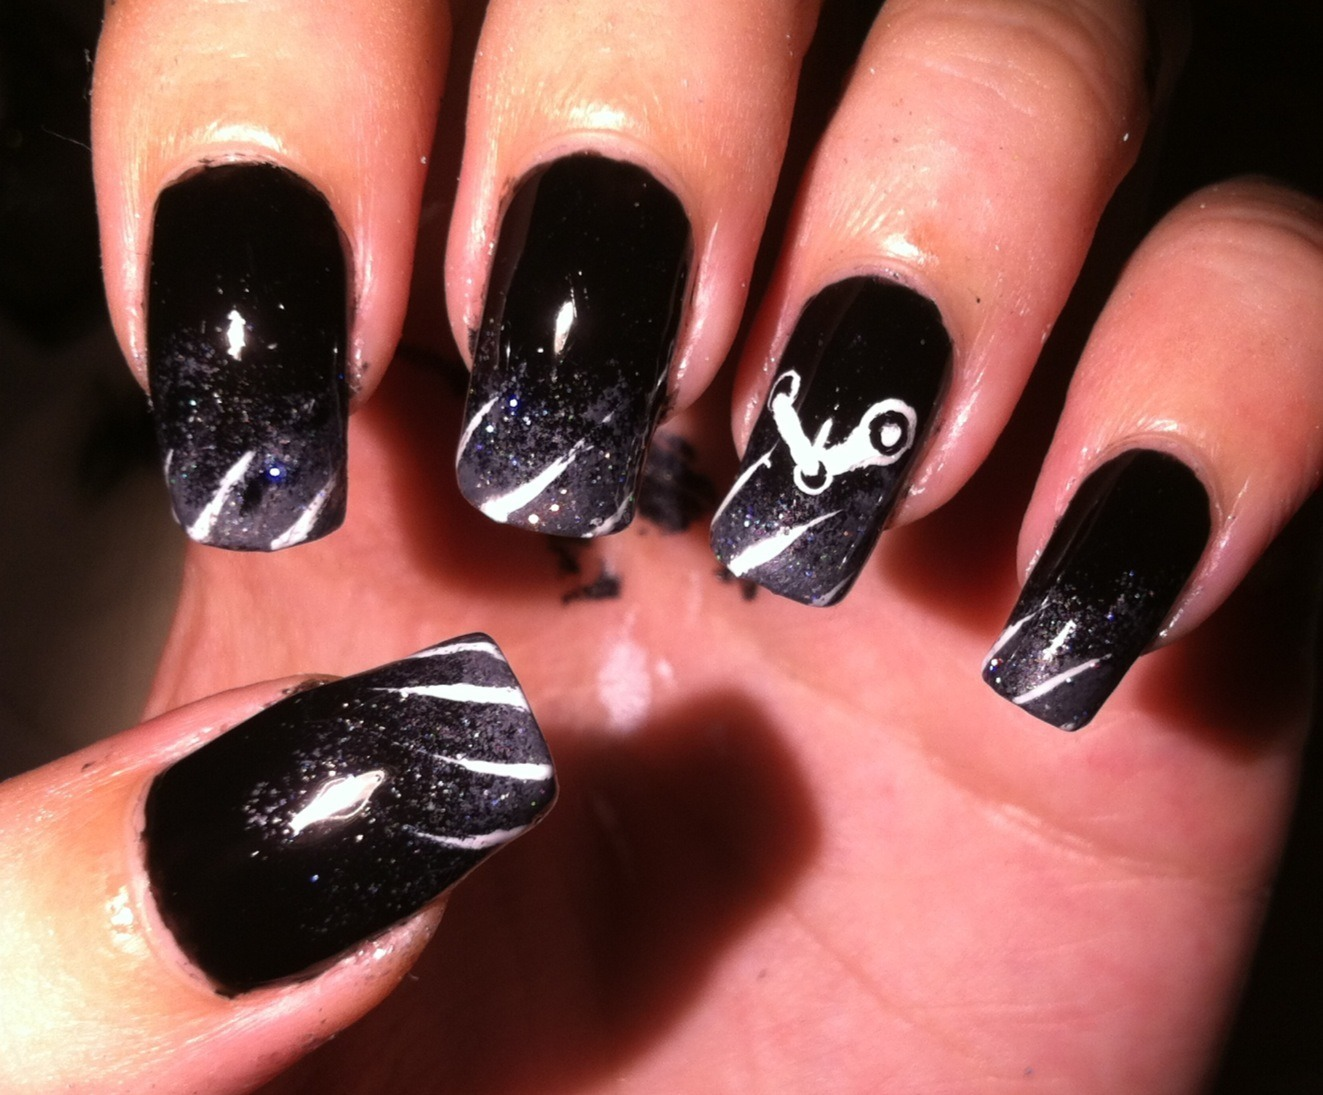 Nerdy nails!: August 2012